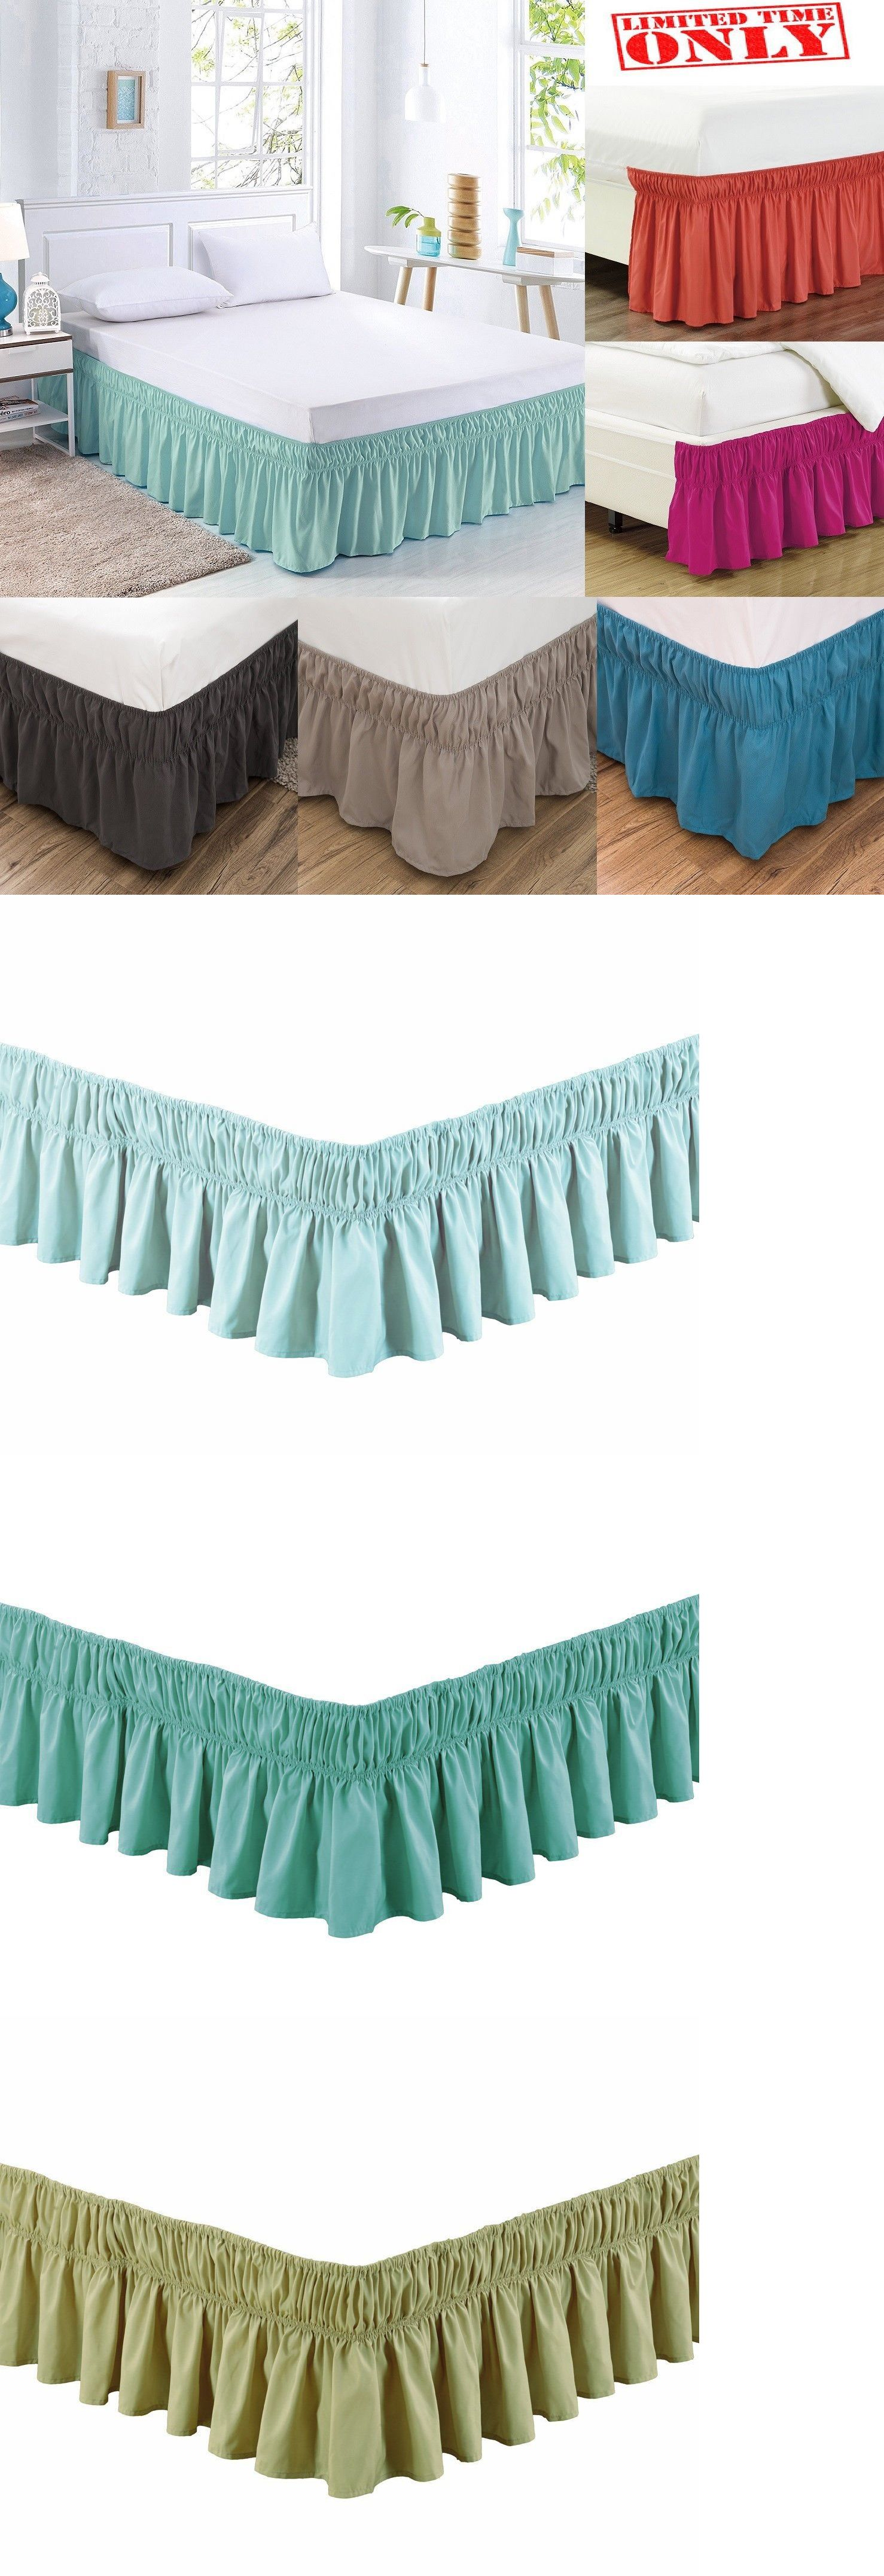 Elastic Bed Skirt Cover Dust Ruffle Wrap 14 Drop Twin Full Queen King 20 Colors Ebay Bed Skirt Ideas Modern Bed Skirt Ideas Diy Bedskirt